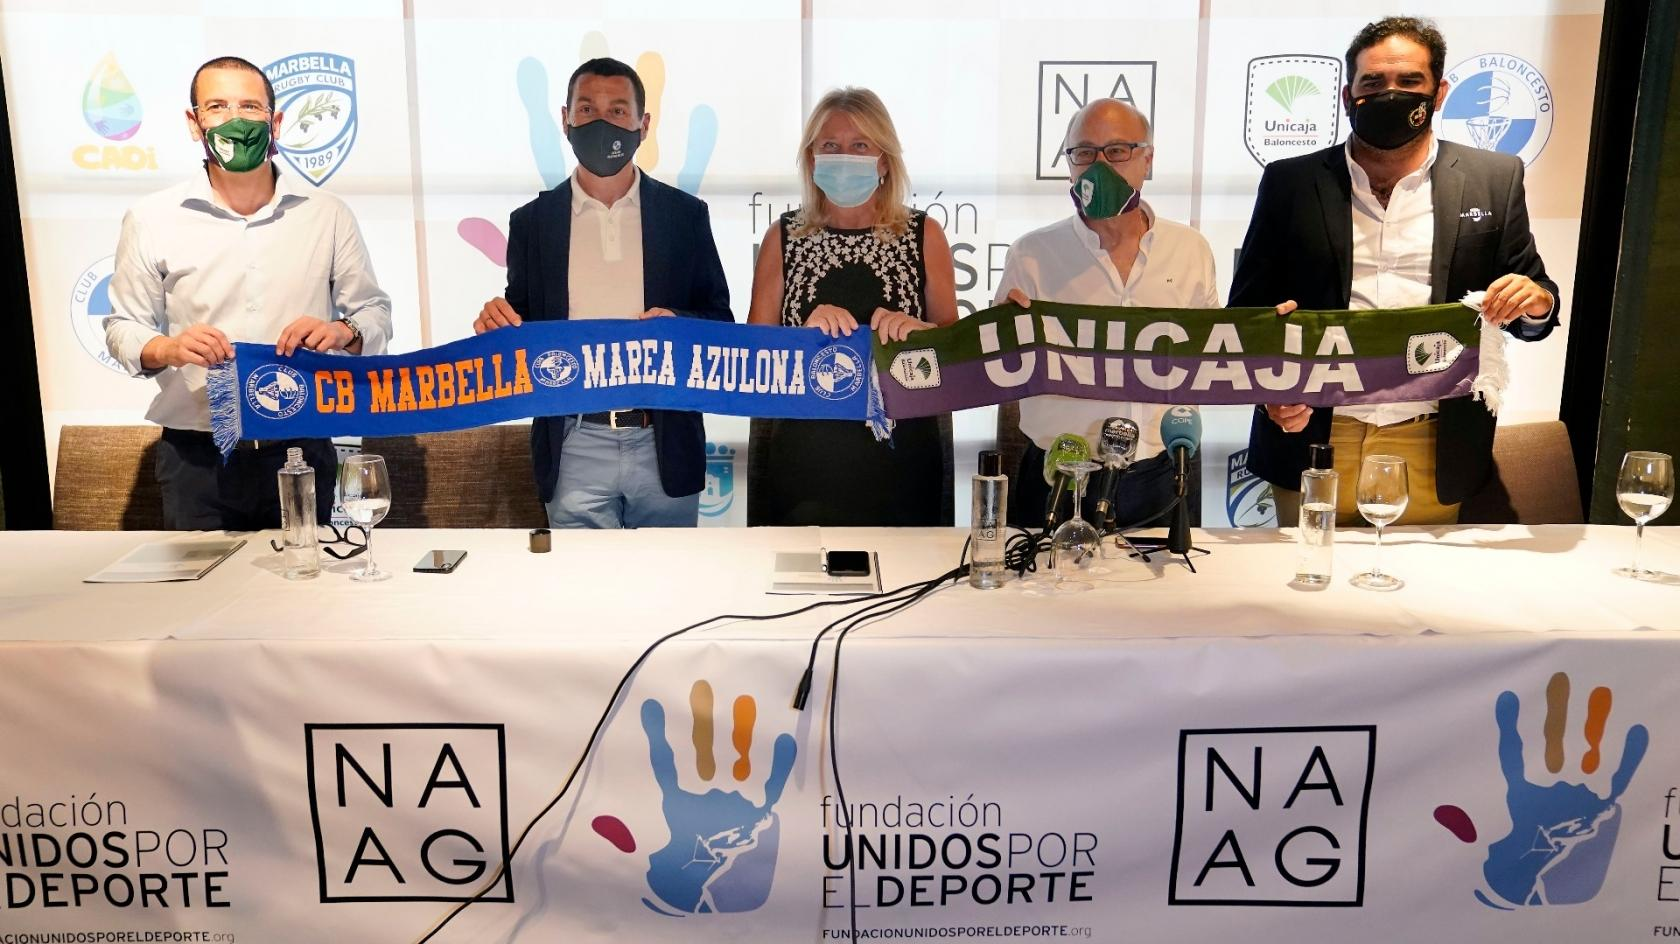 Unicaja Baloncesto and CB Marbella sign a relationship agreement